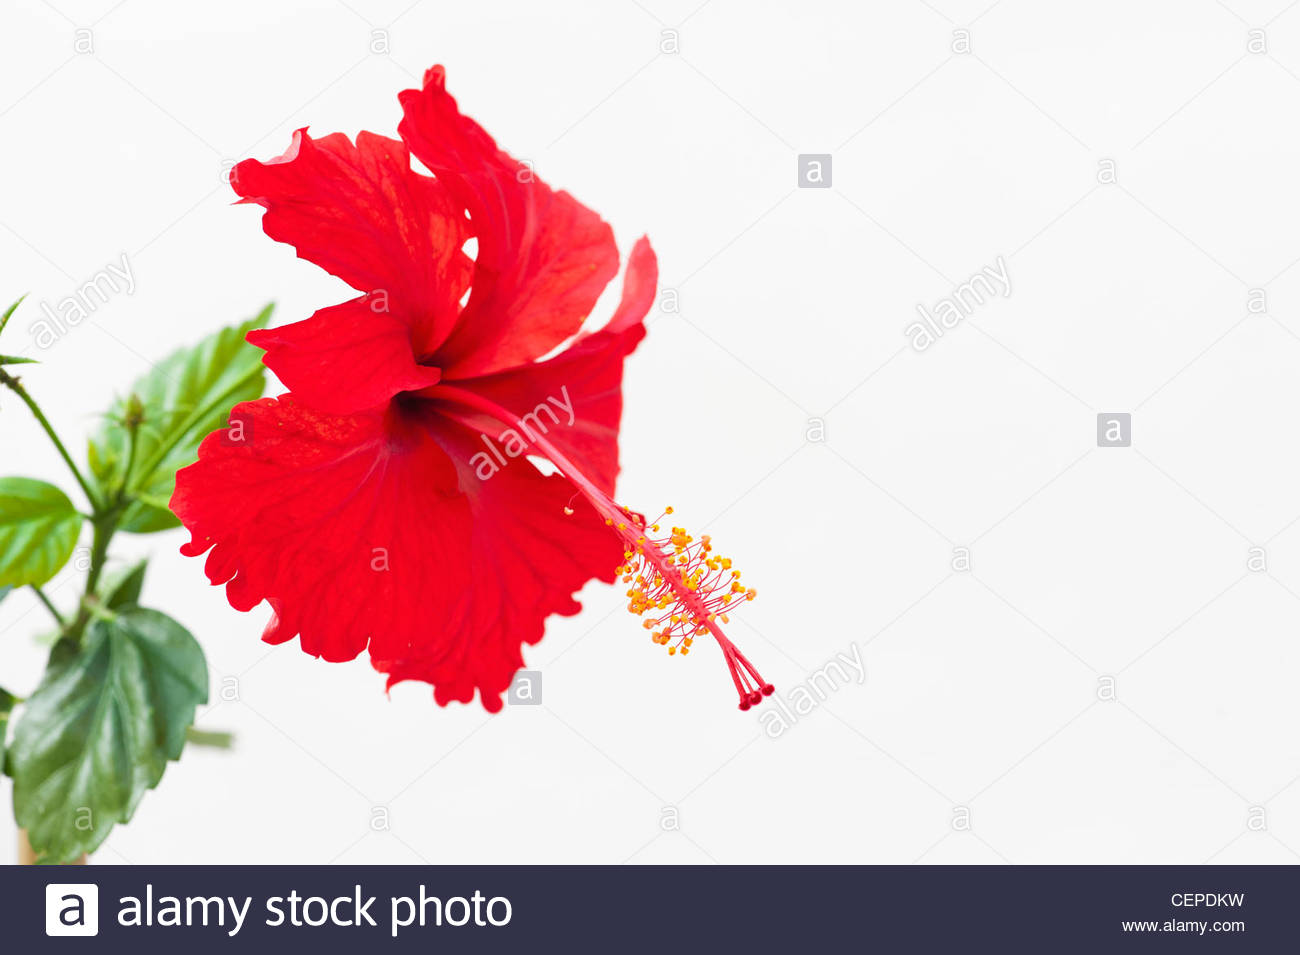 Hibiscus rosa sinensis red hibiscus flower on white background hibiscus rosa sinensis red hibiscus flower on white background izmirmasajfo Image collections